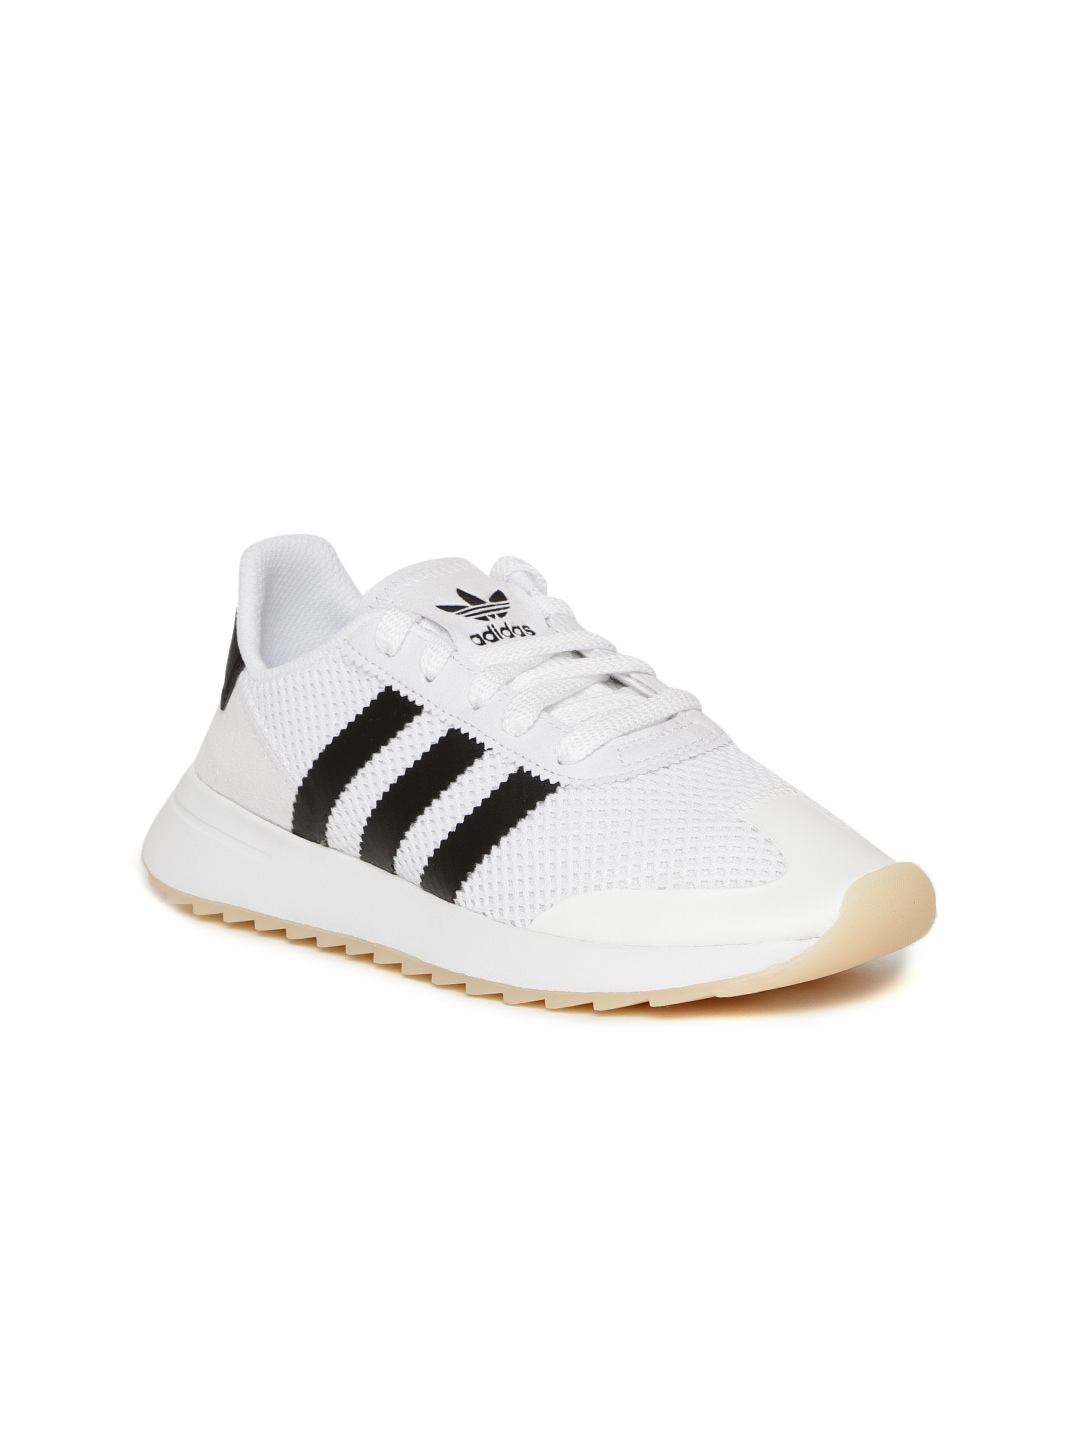 Clothing Originals Online Buy Adidas Shoes And qIFdIwWHT